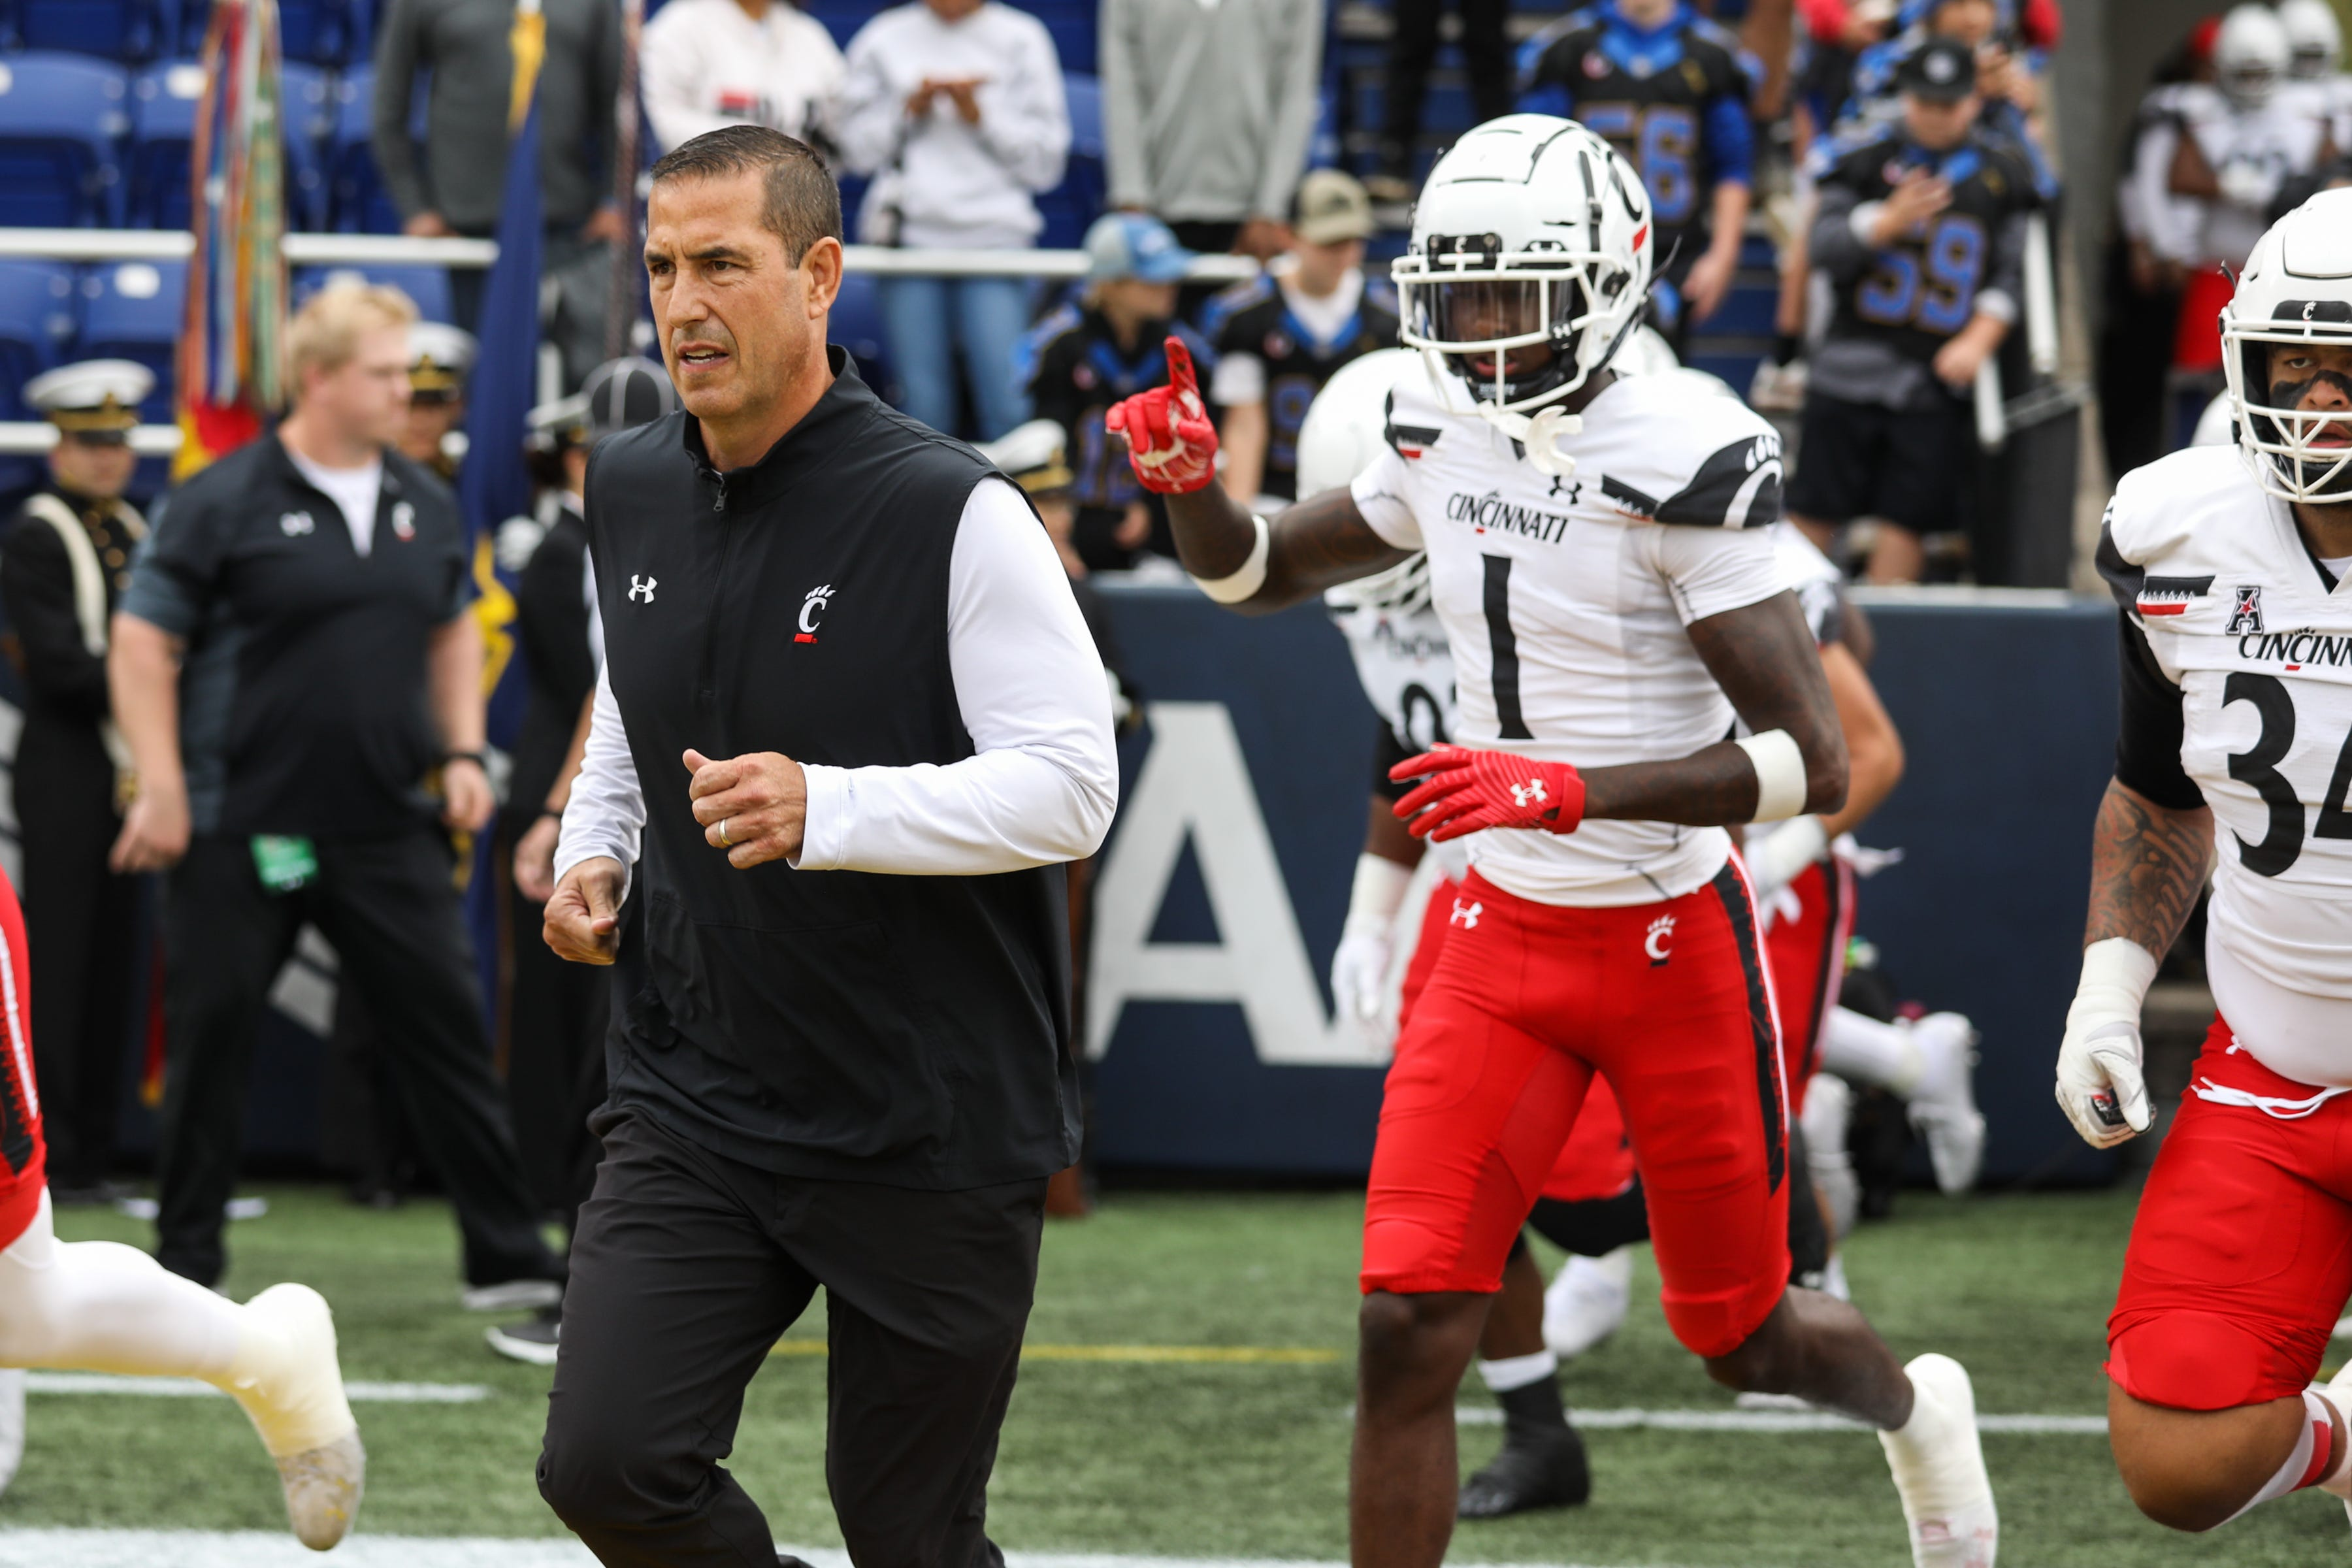 Analysis: A tough win still beats a bad loss, as the Bearcats continue chase for trophies